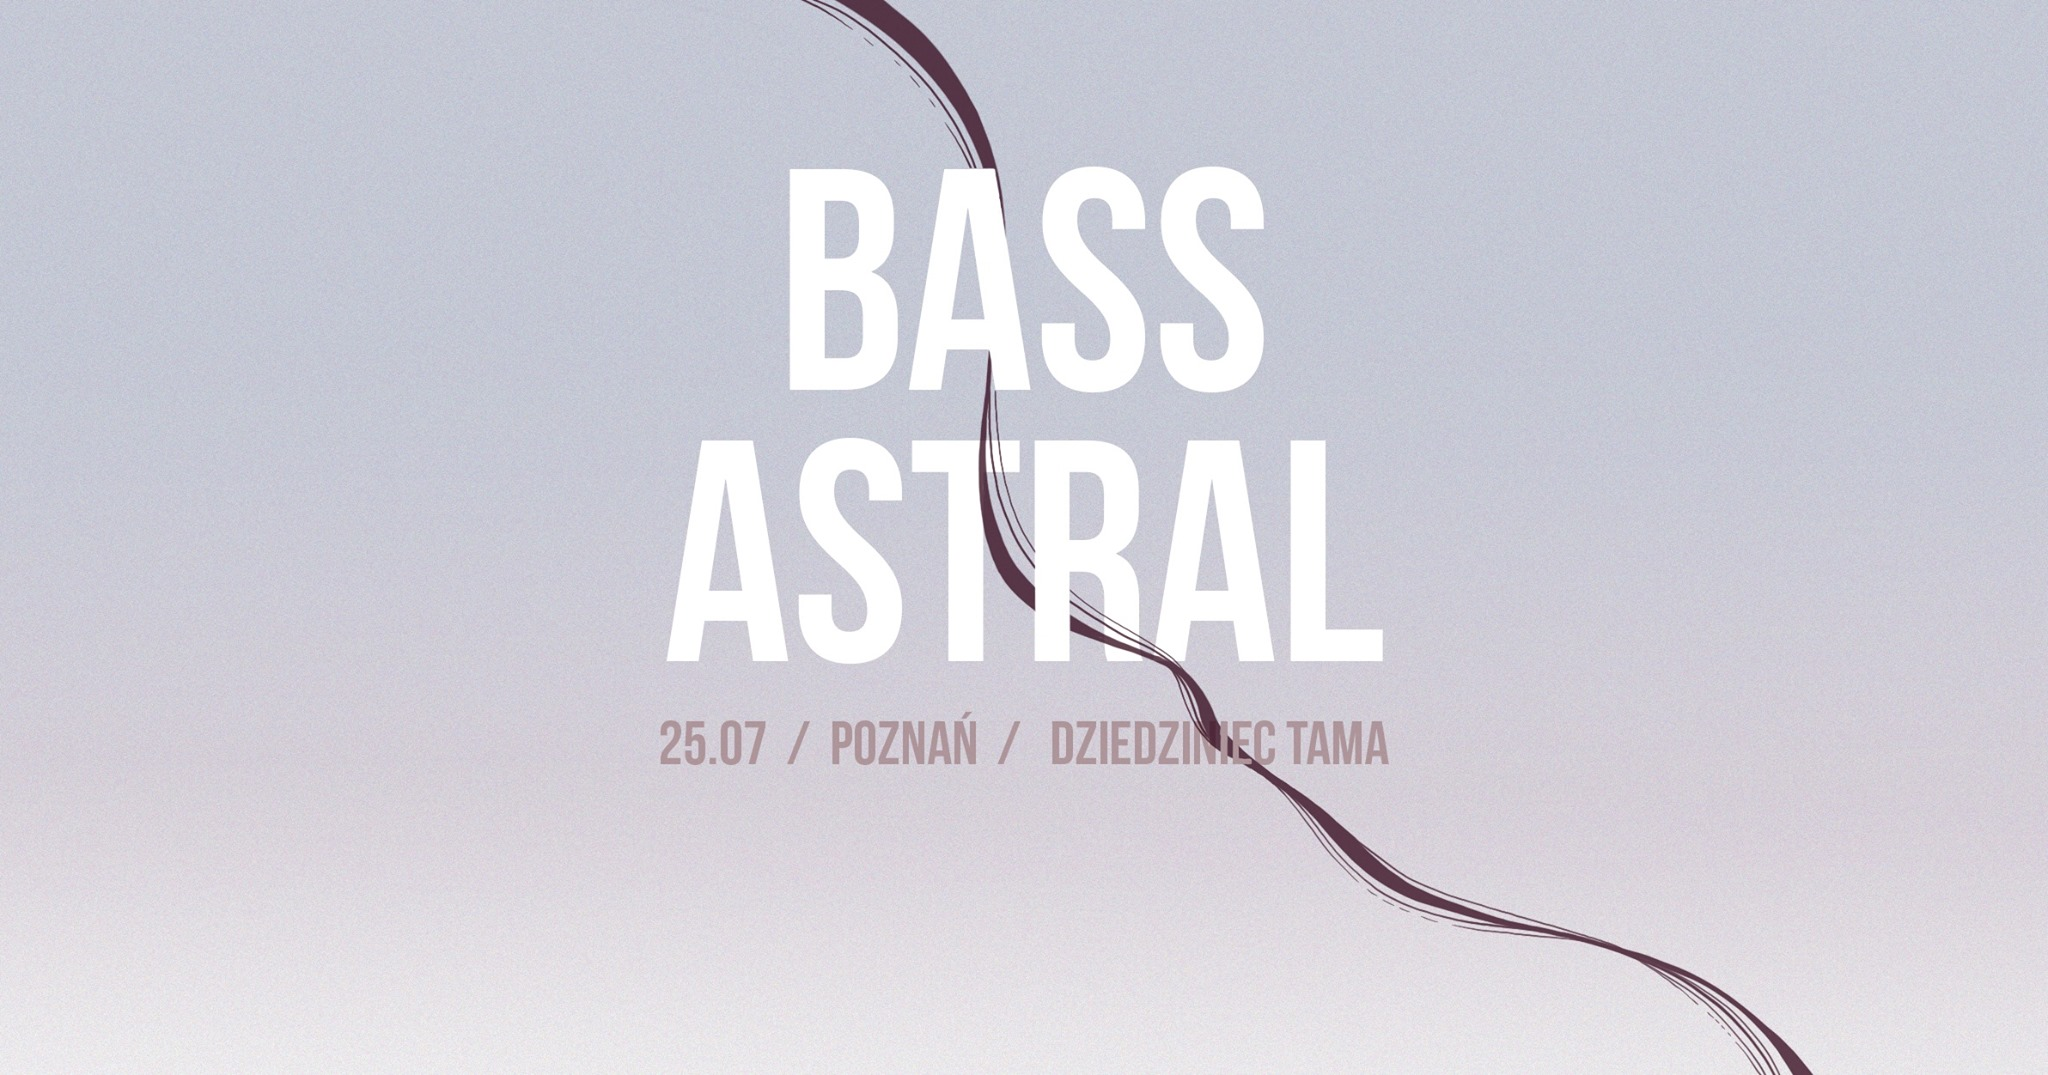 Bass Astral Audio Weekend